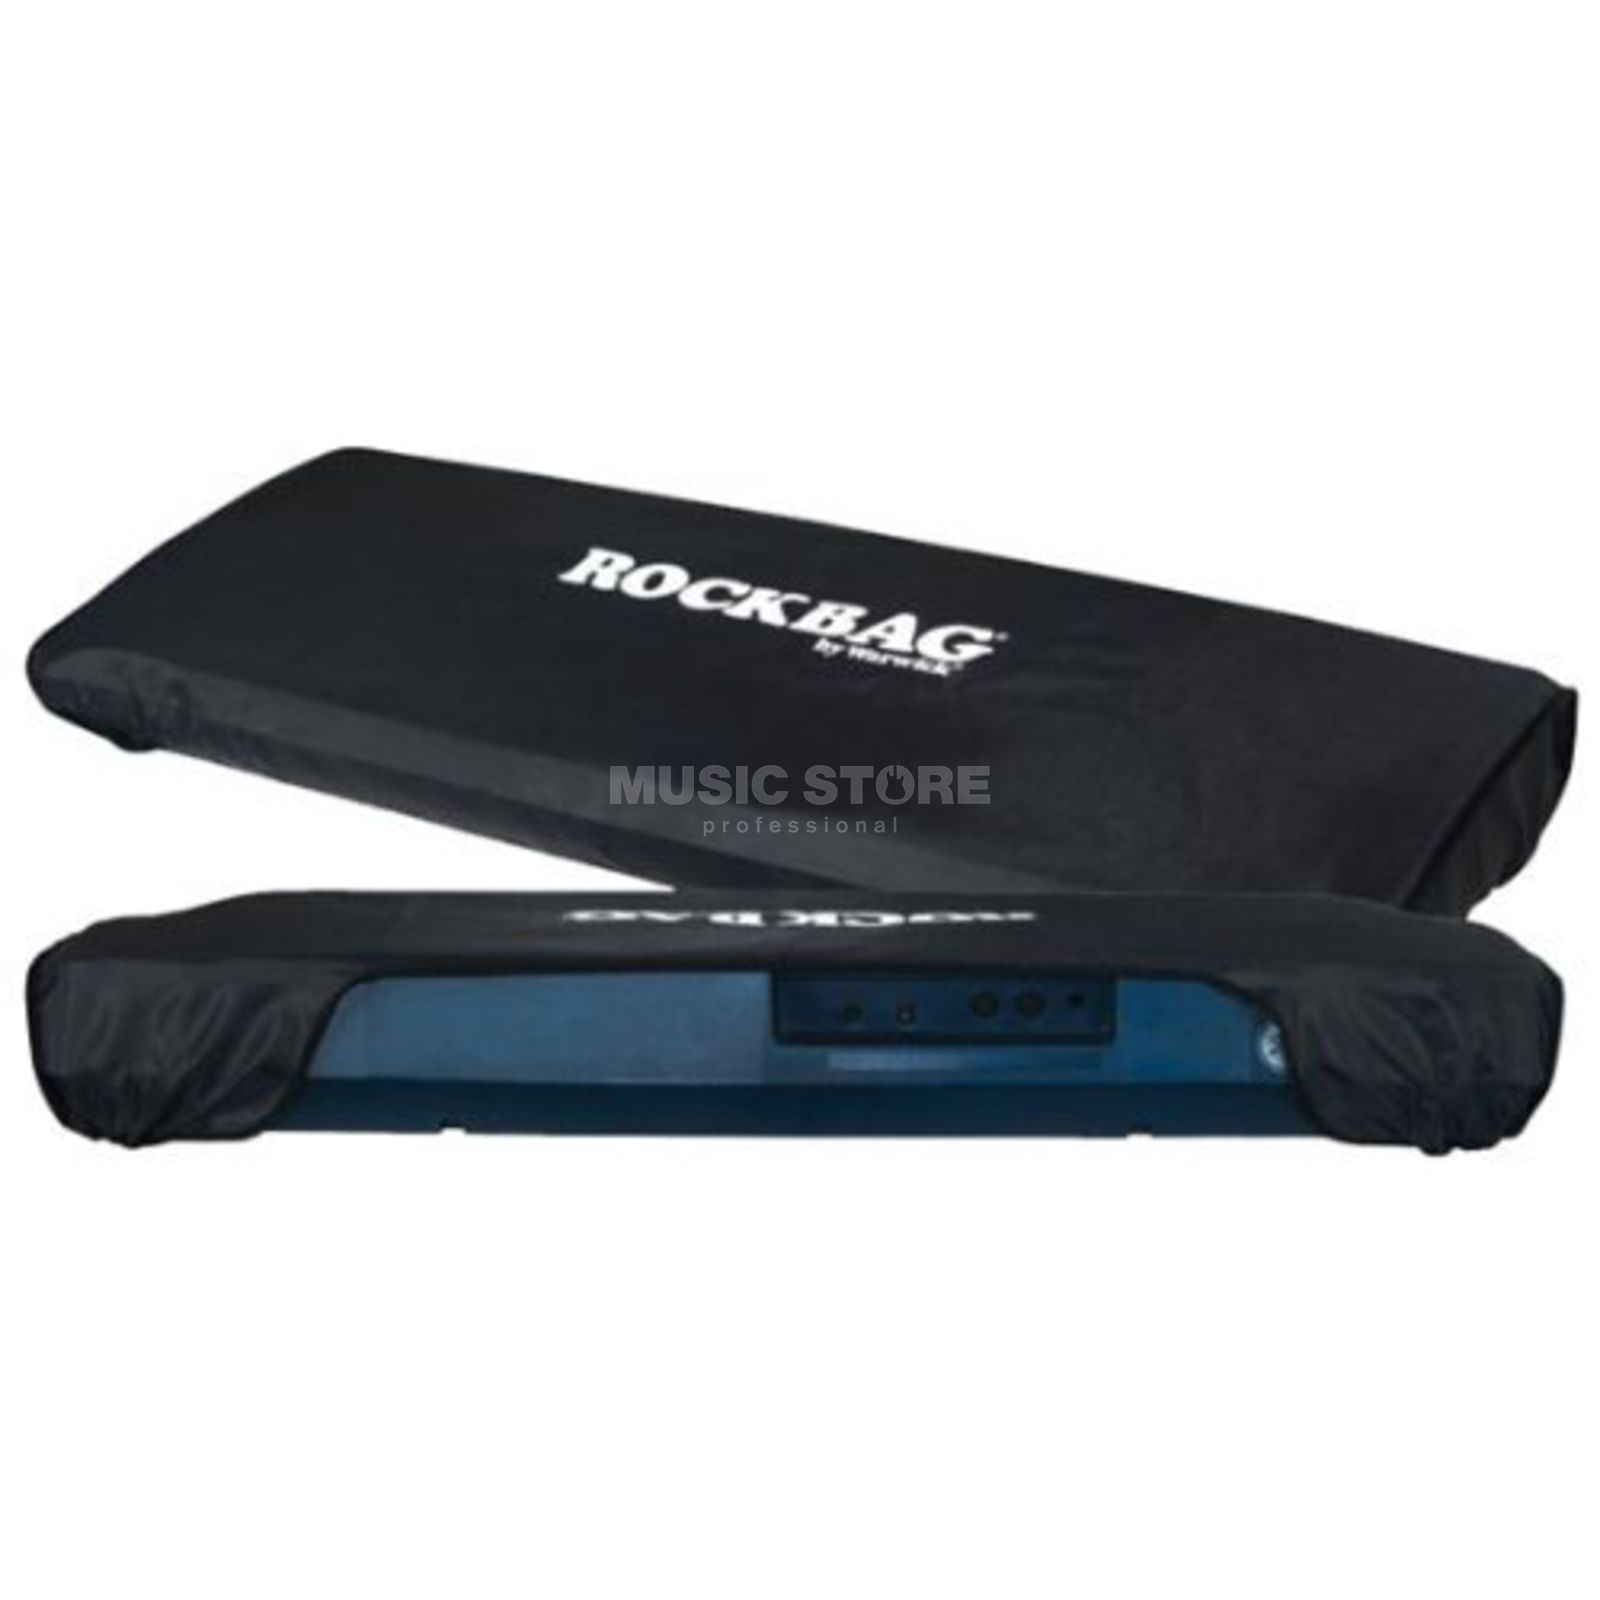 Rockbag Keyboard Dustcover RB21714B Black, 93 x - 35.5 x - 12cm Produktbillede